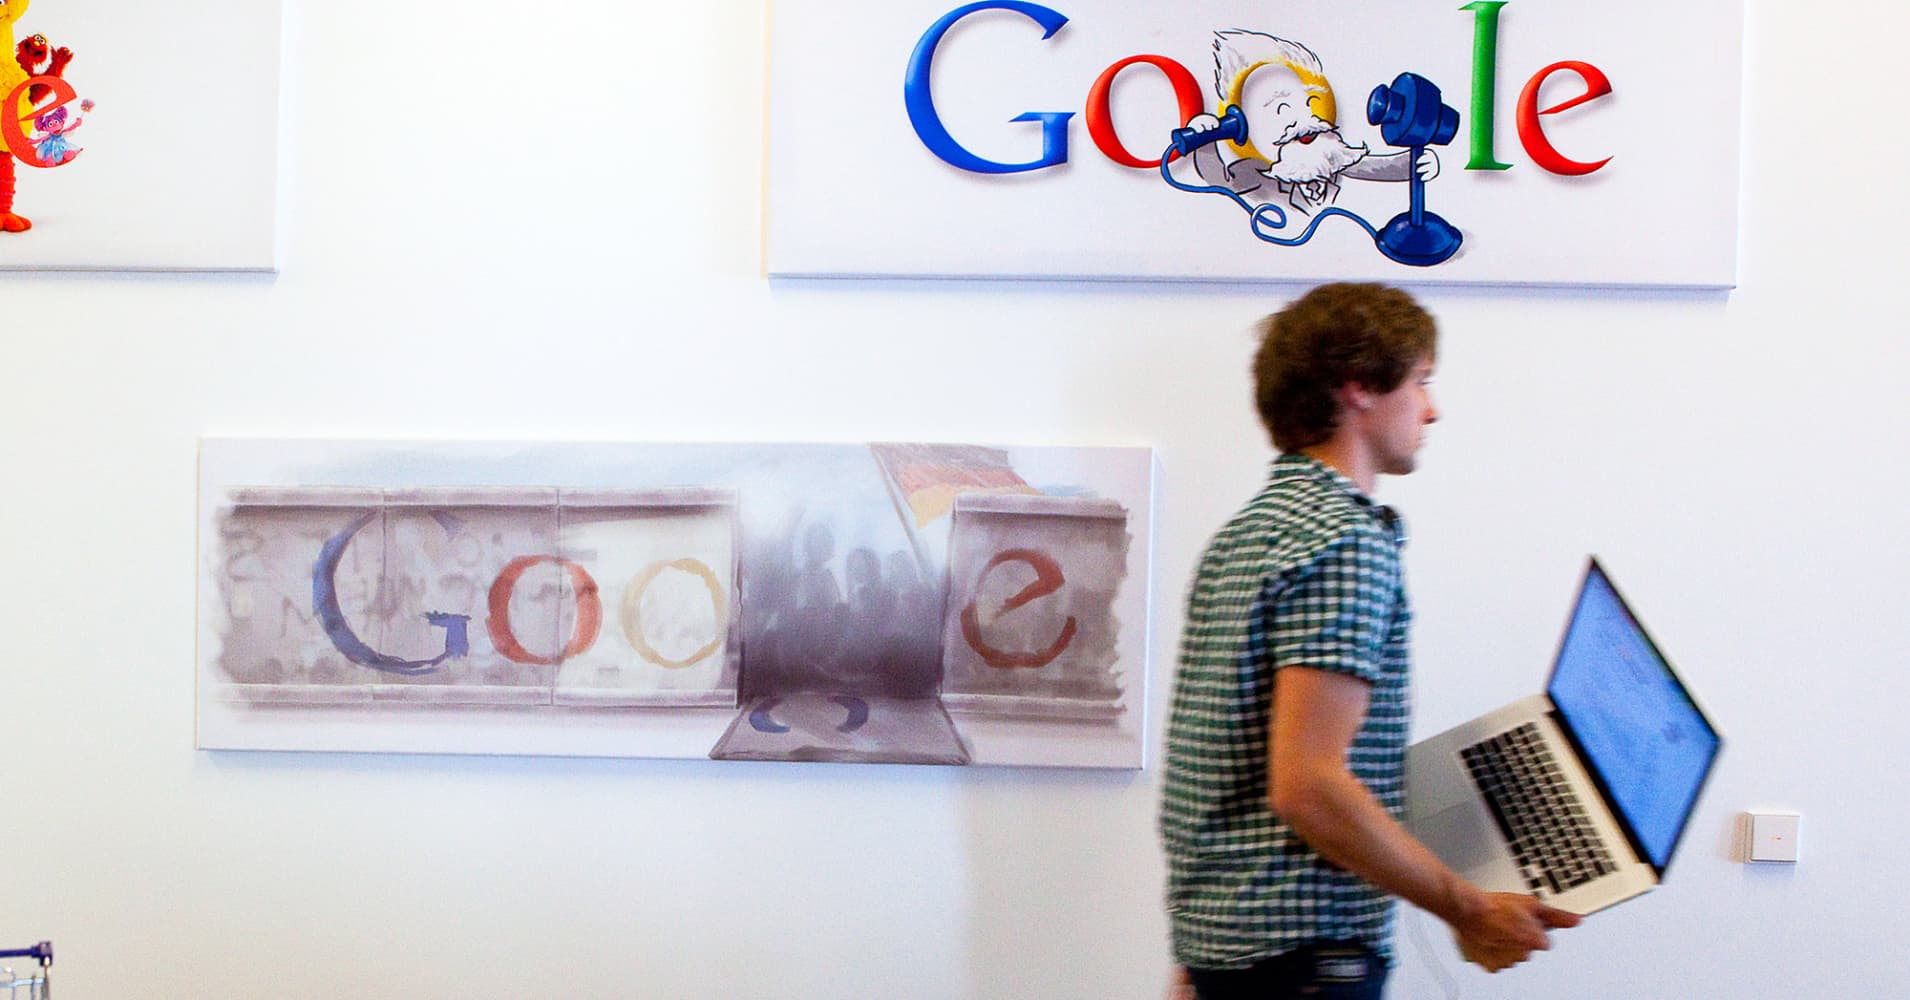 Want a job at Google or Amazon? These 4 (little-known) resume tricks can help you get hired